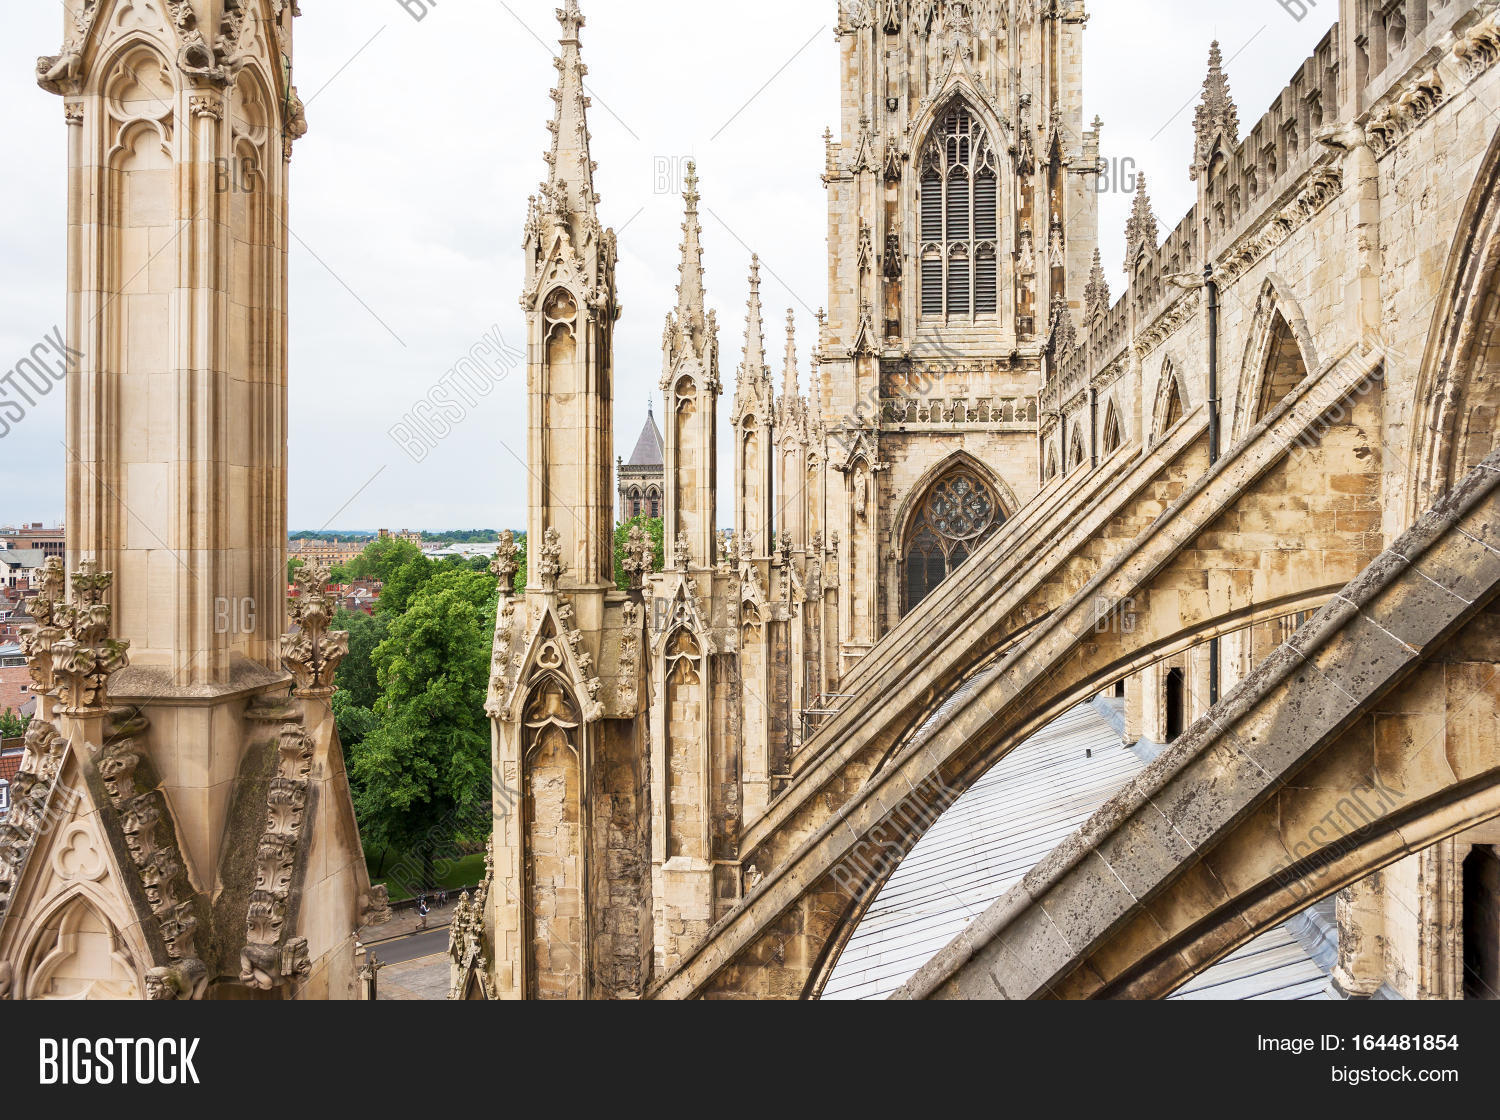 York Minster Is A Cathedral In England One Of The Leading Examples English Gothic